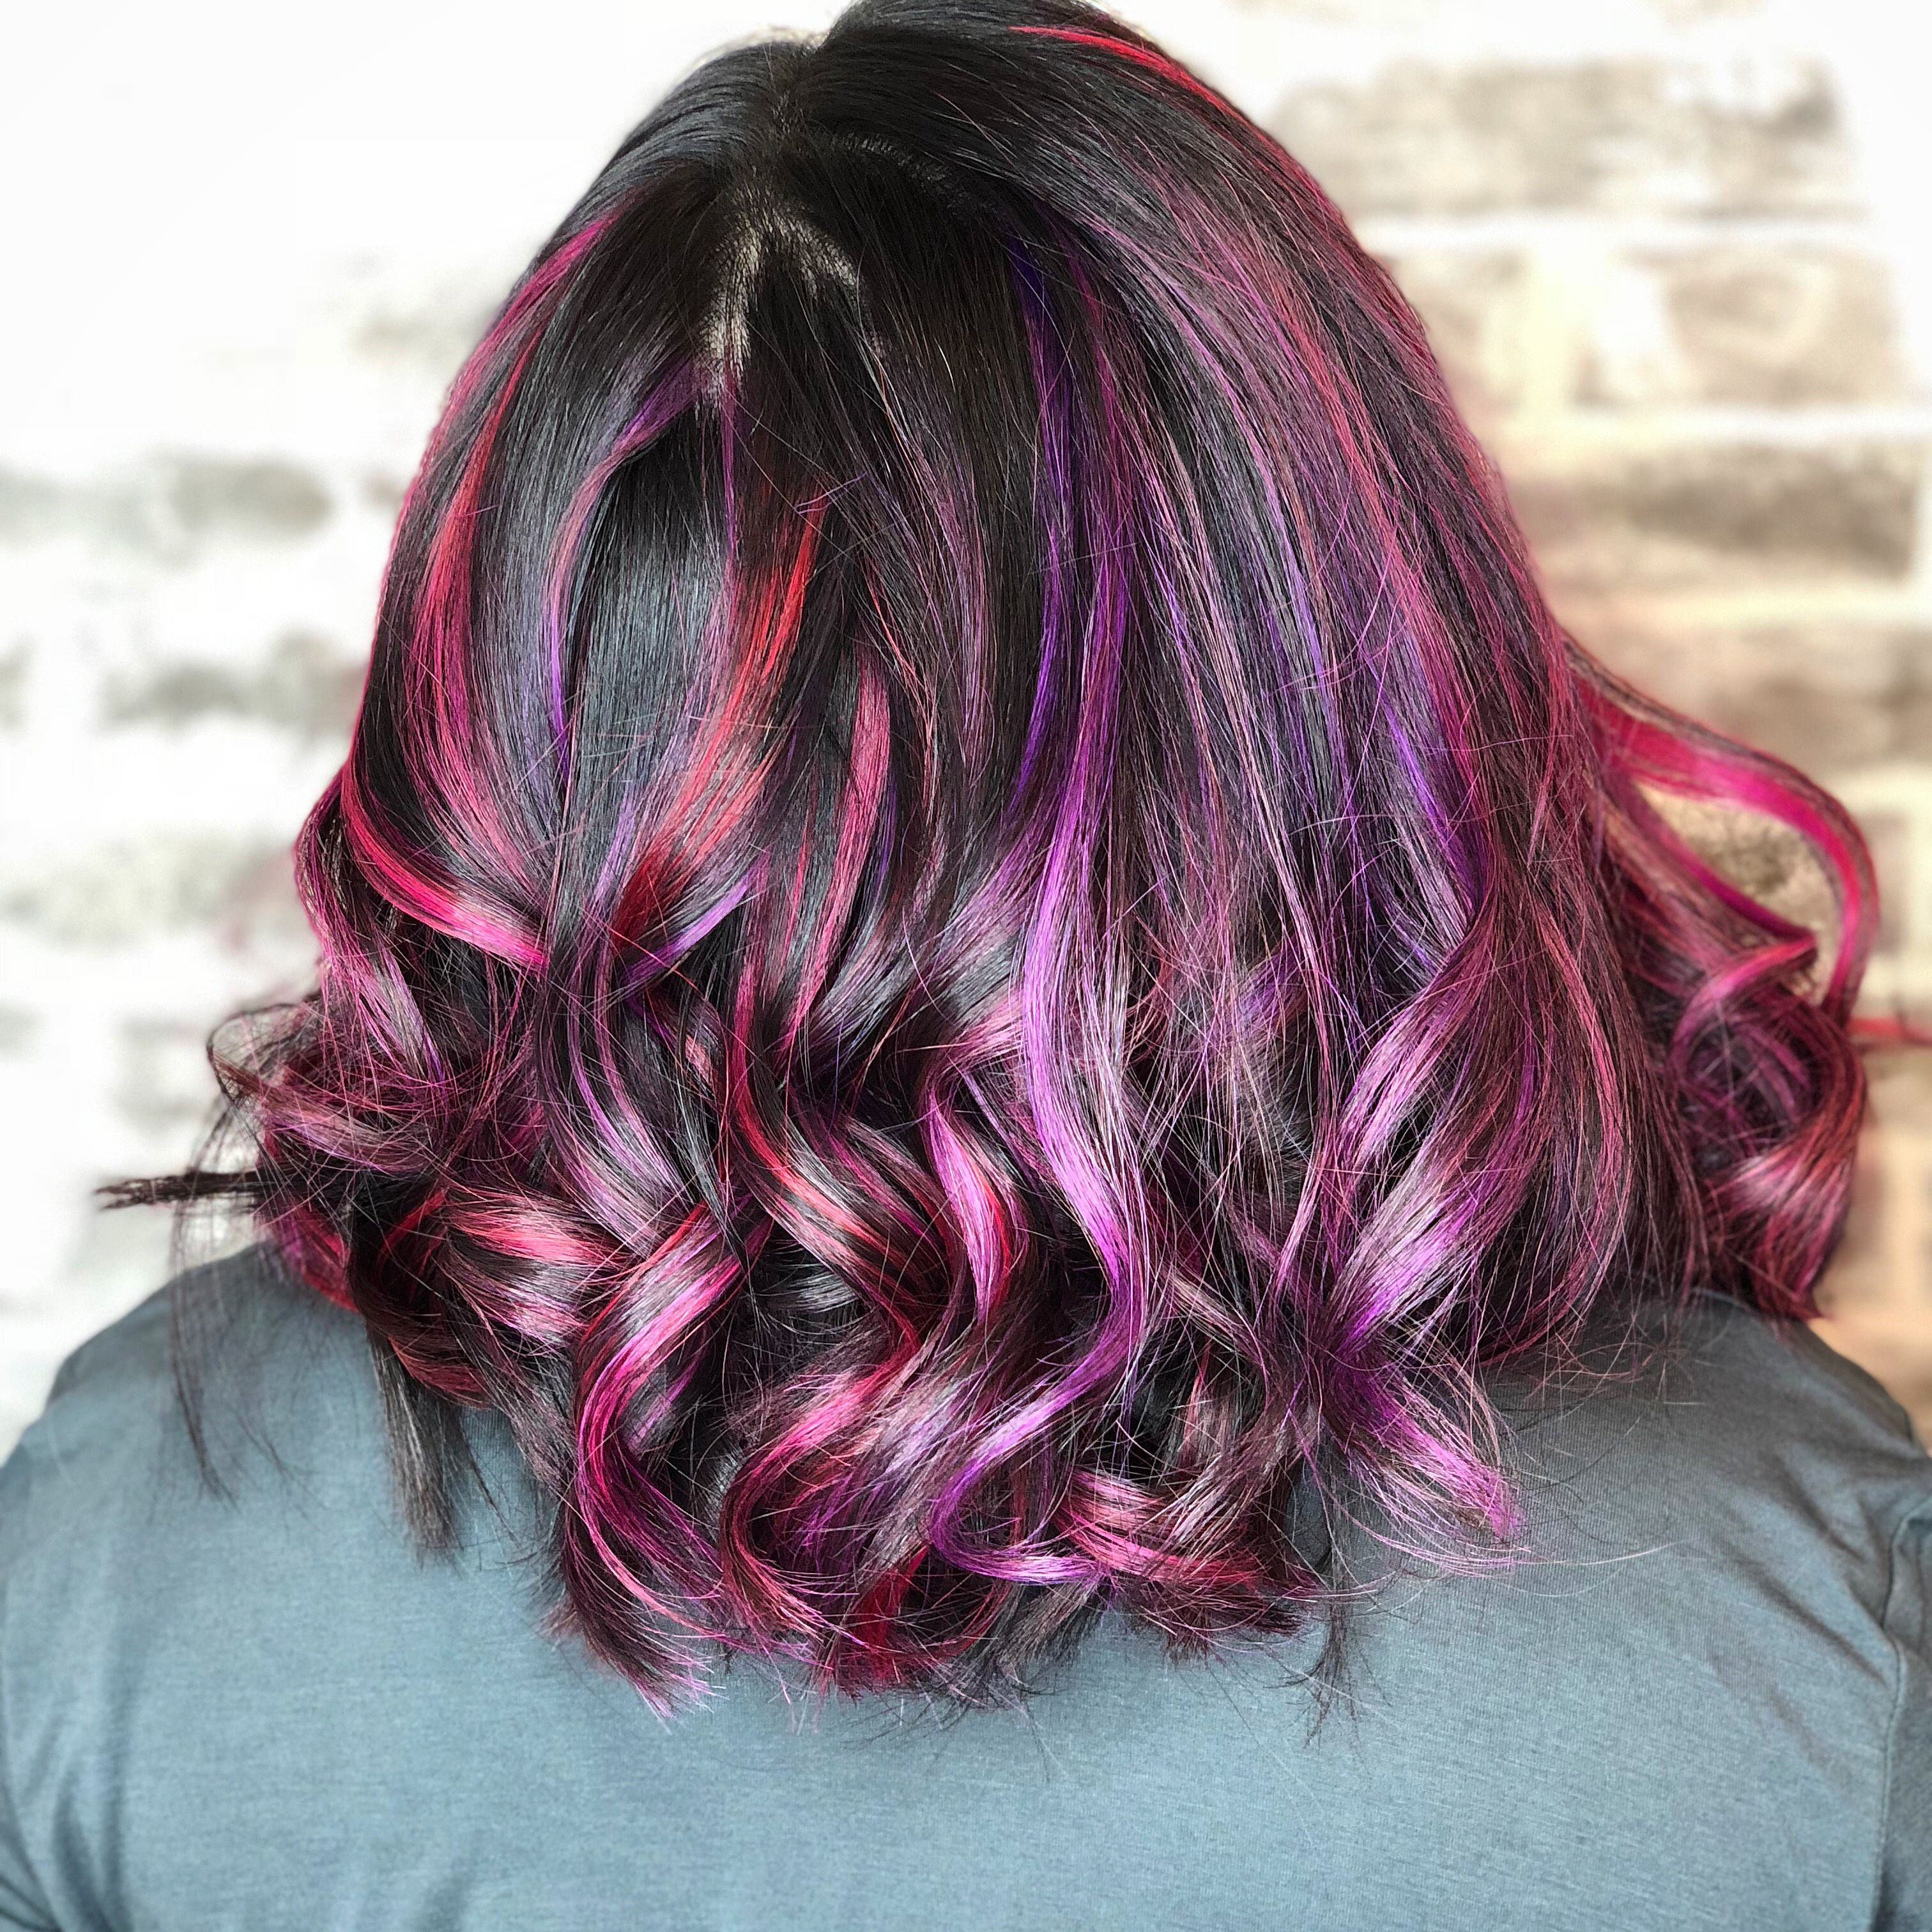 Asian Hair Purple Pink Red Highlights On Black Hair Purplehair Galaxyhair Multicolorhair Asian Hair Black Hair With Highlights Multi Colored Hair